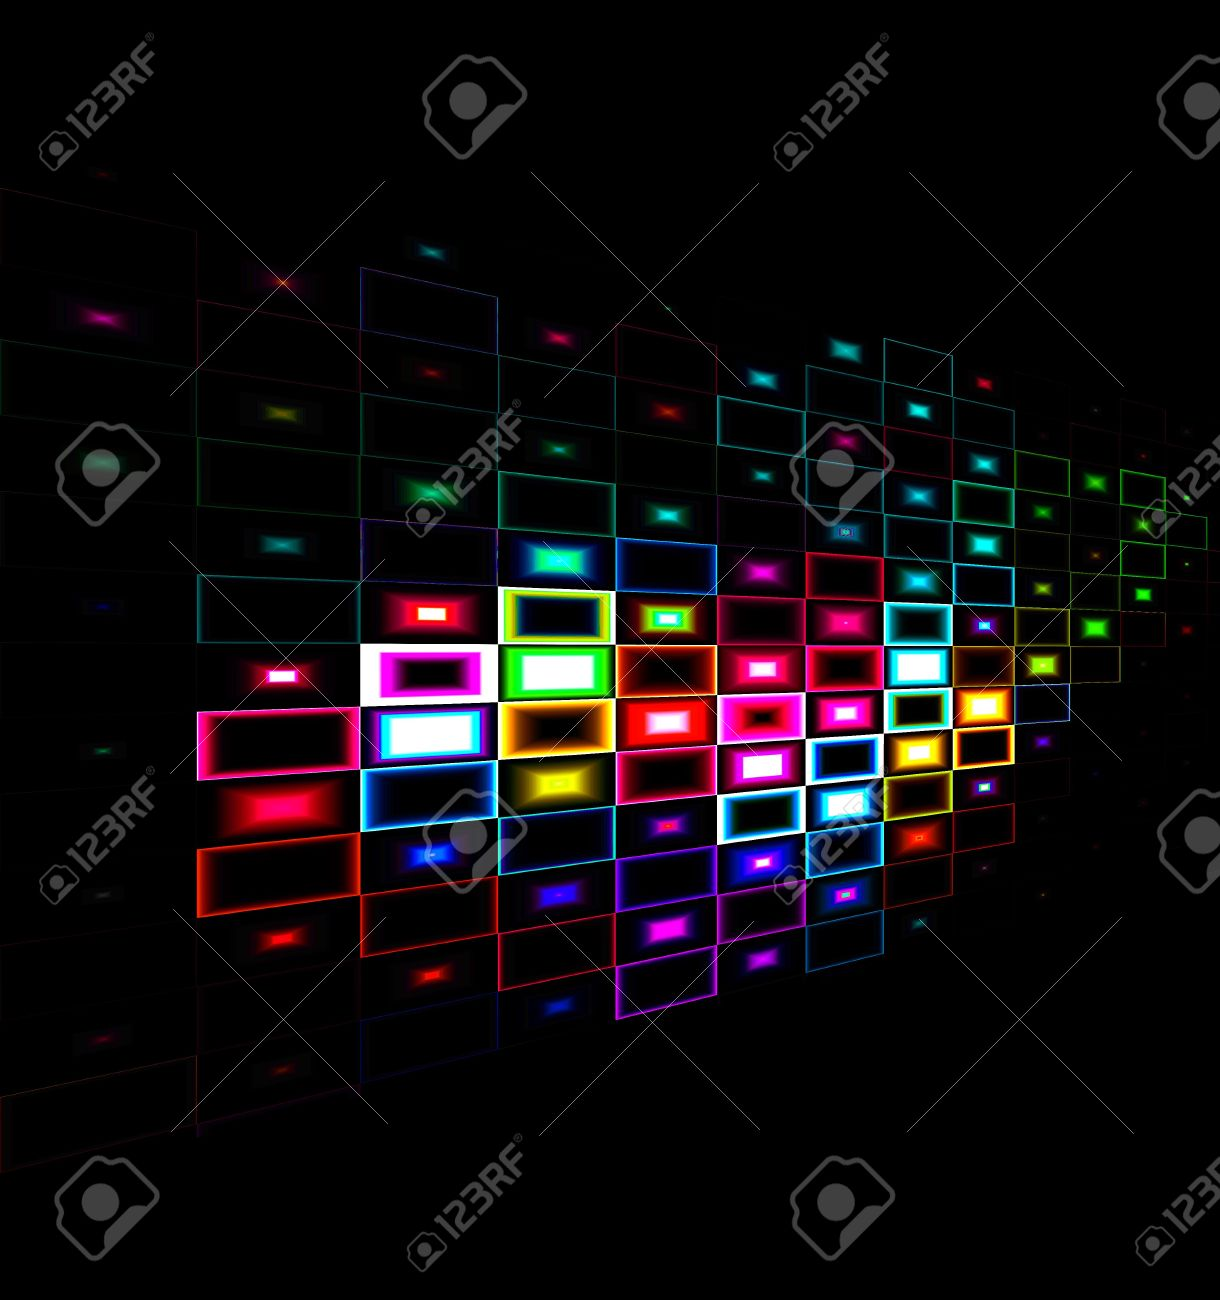 multicolor abstract background design with a black background stockmulticolor abstract background design with a black background stock photo 4928337